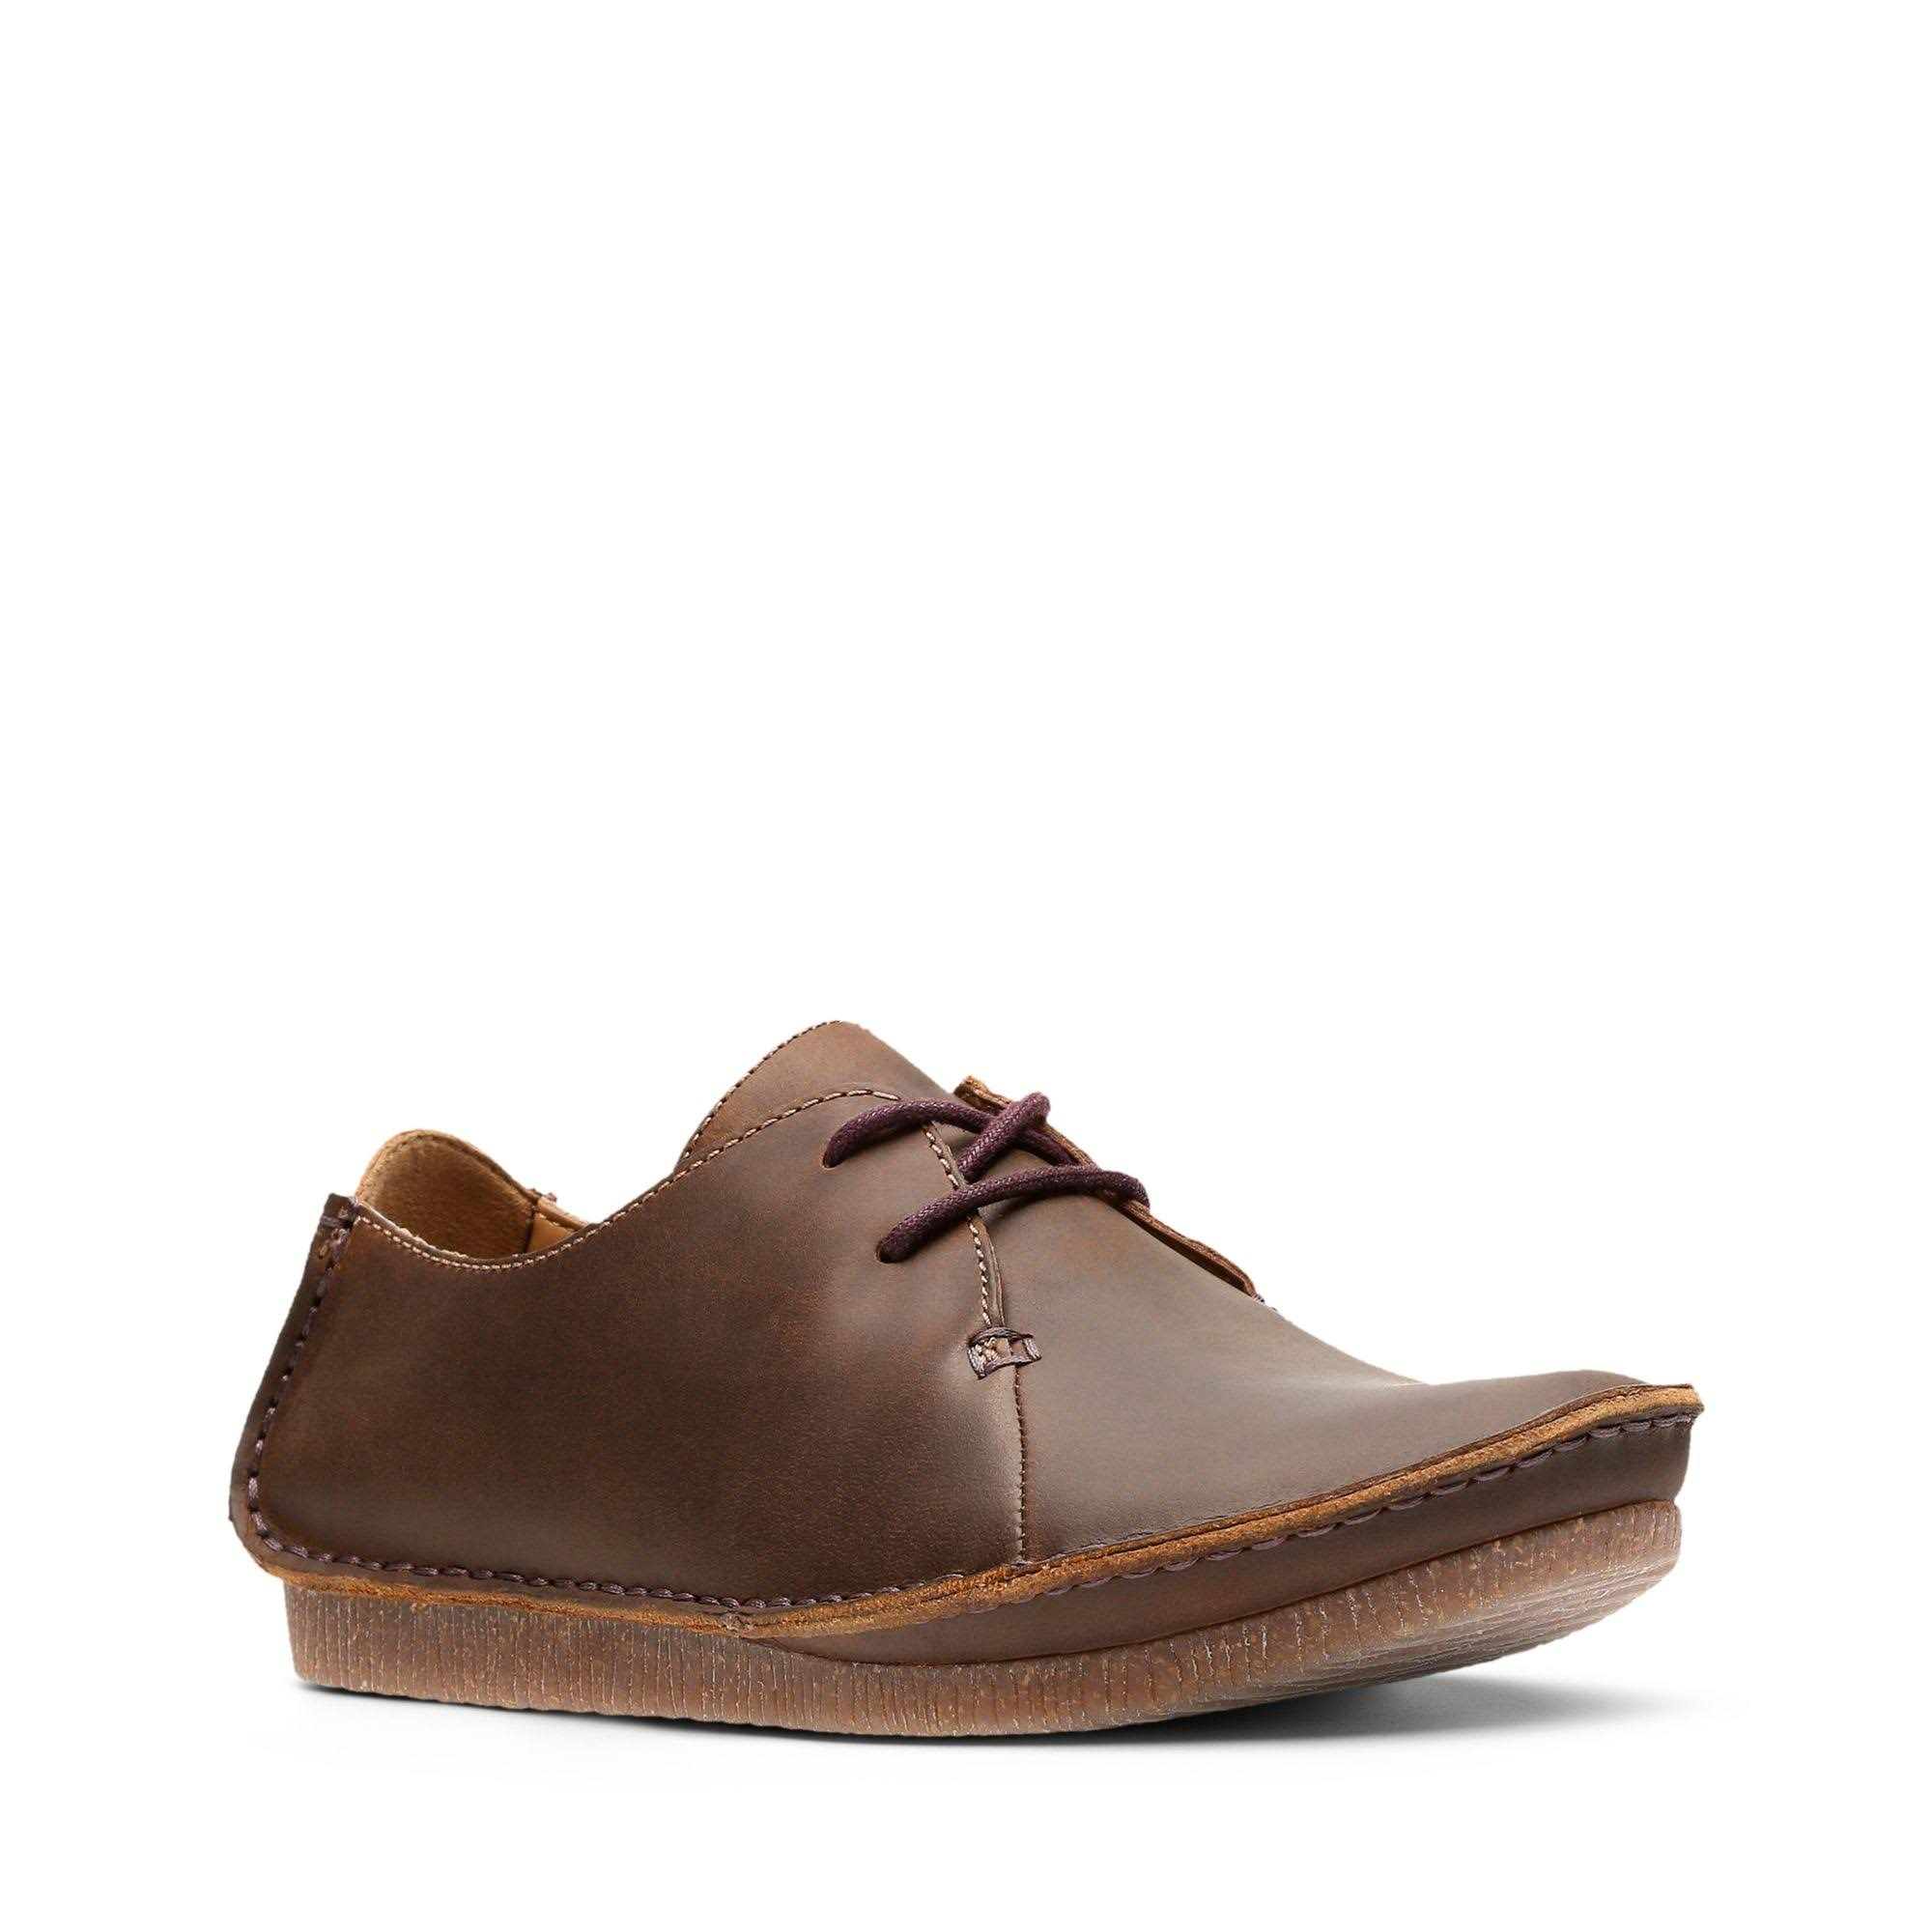 D'apimarrone ClarksJaney Oxfords Marrone Da DonnaColore Mae Cera MqSLzVUpG